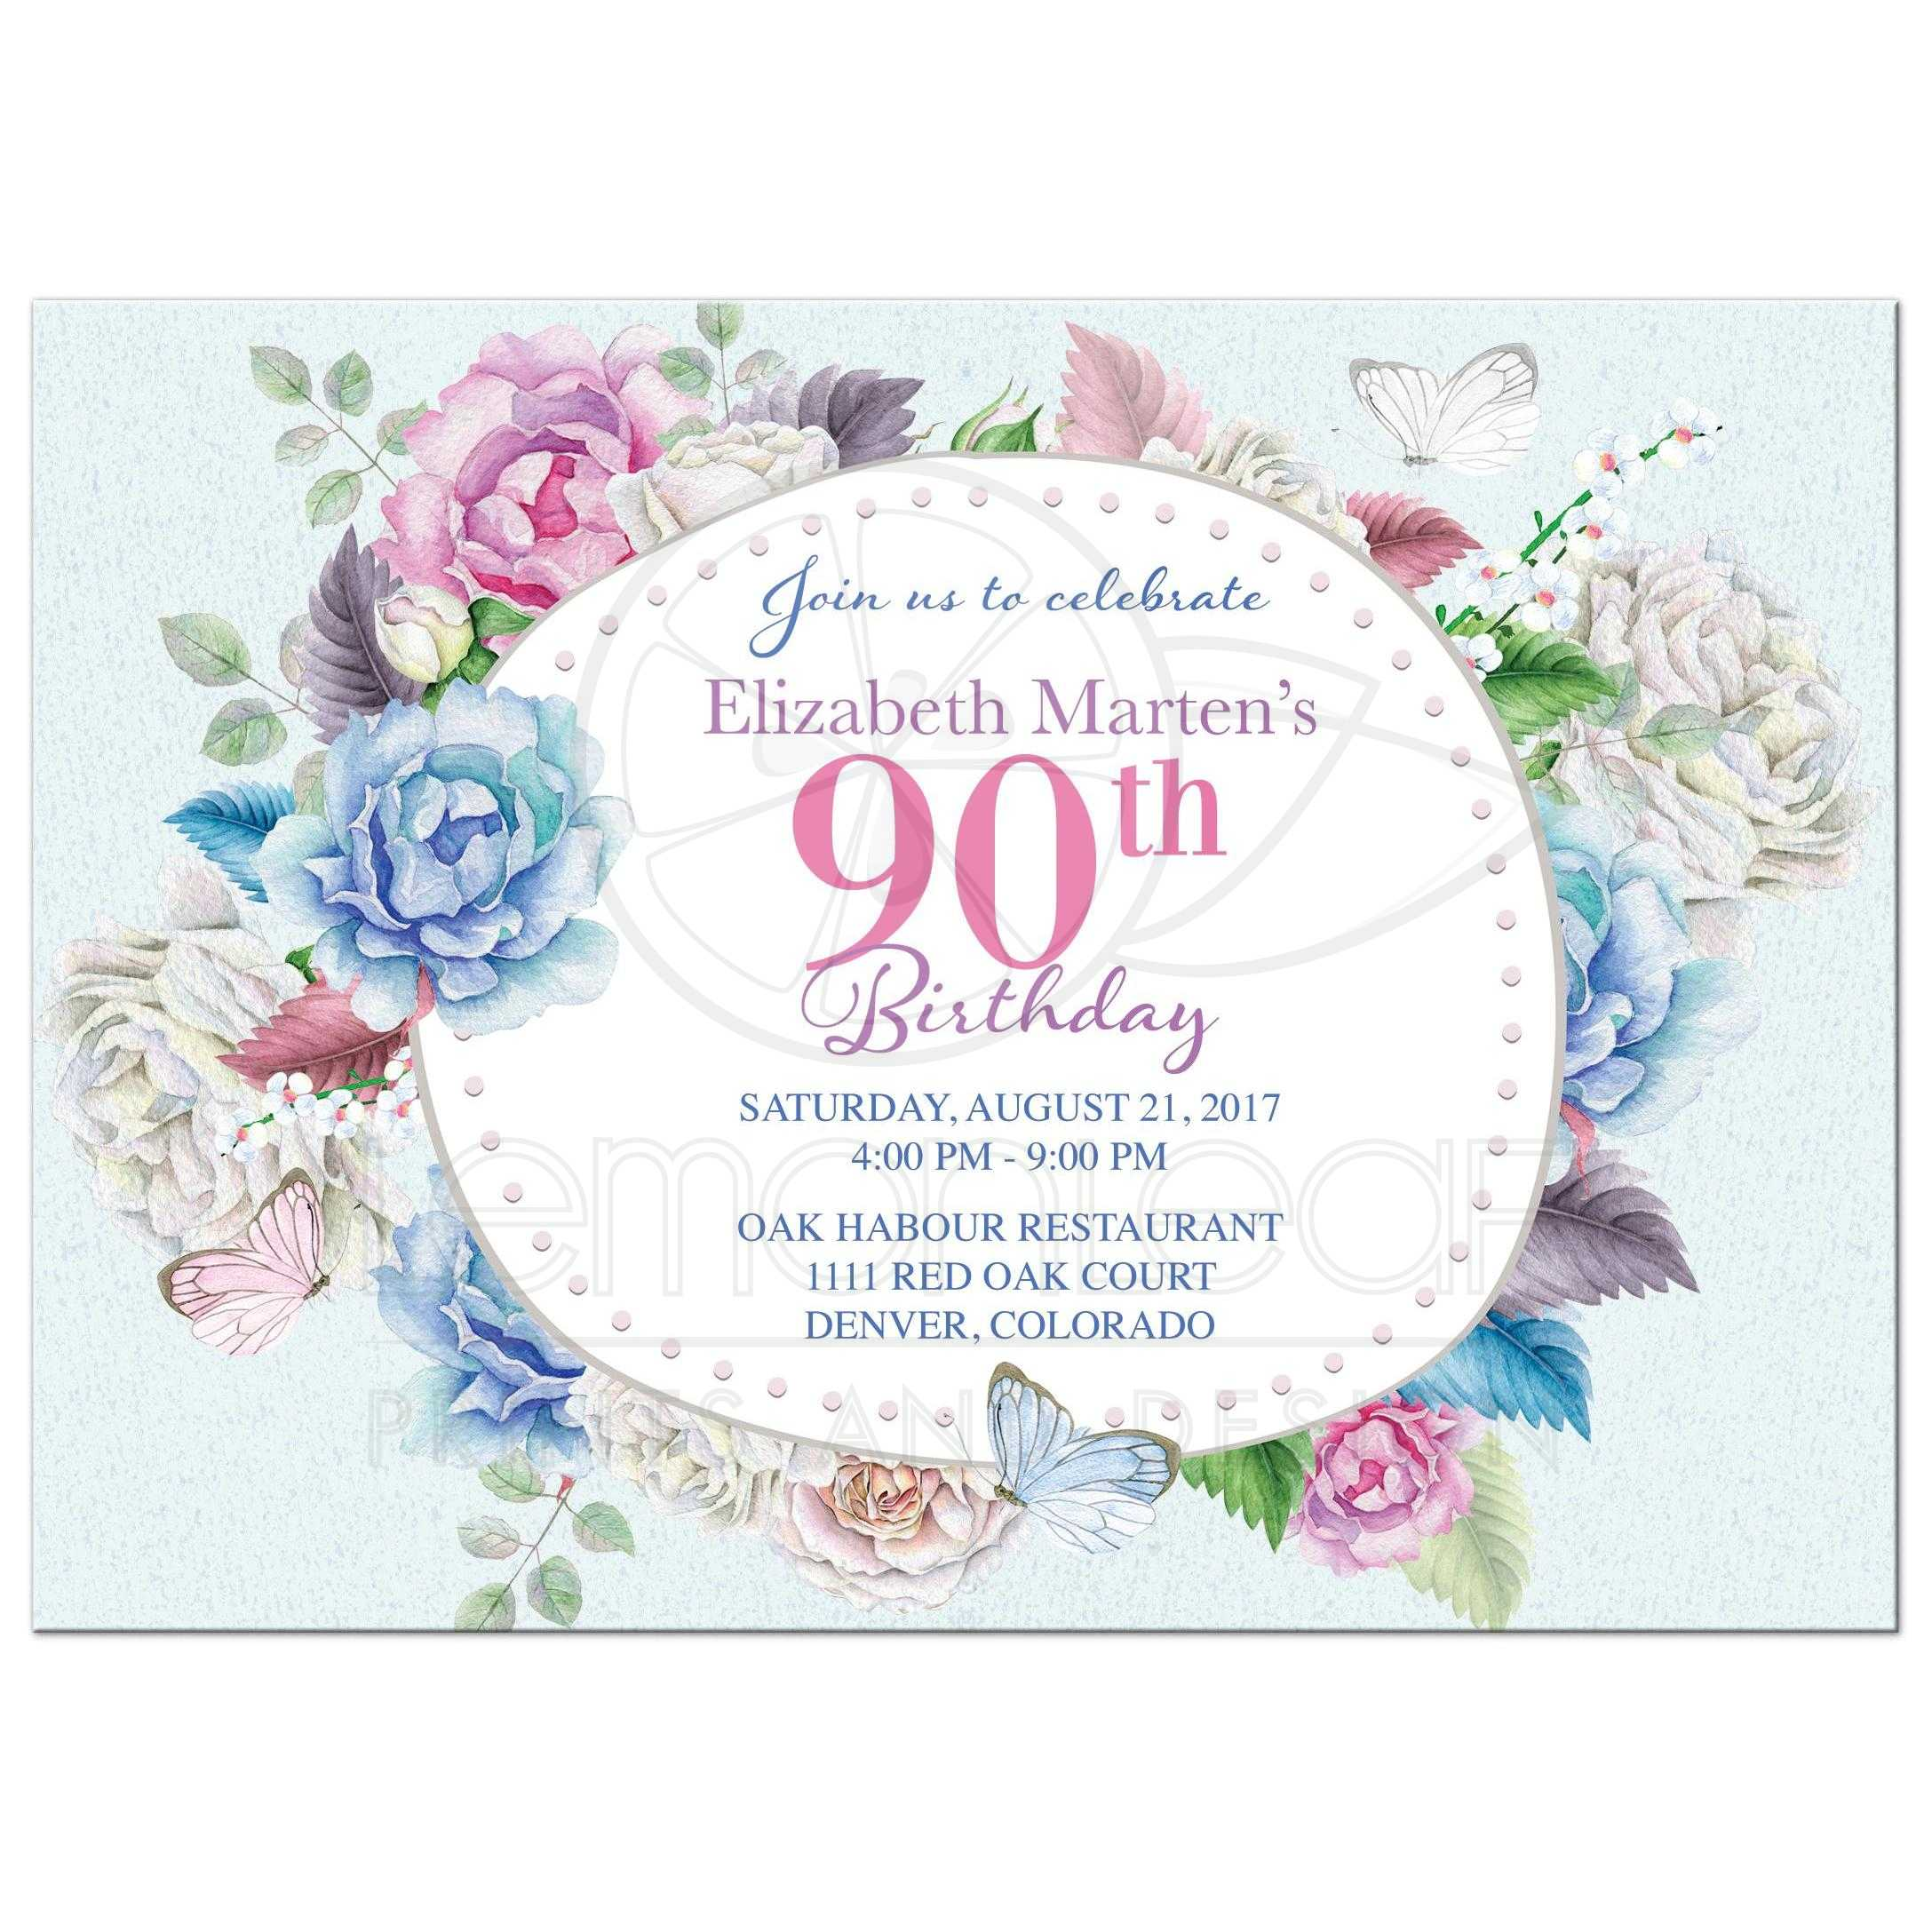 Watercolor Rose Peony 90th Birthday Invitation Floral Frame